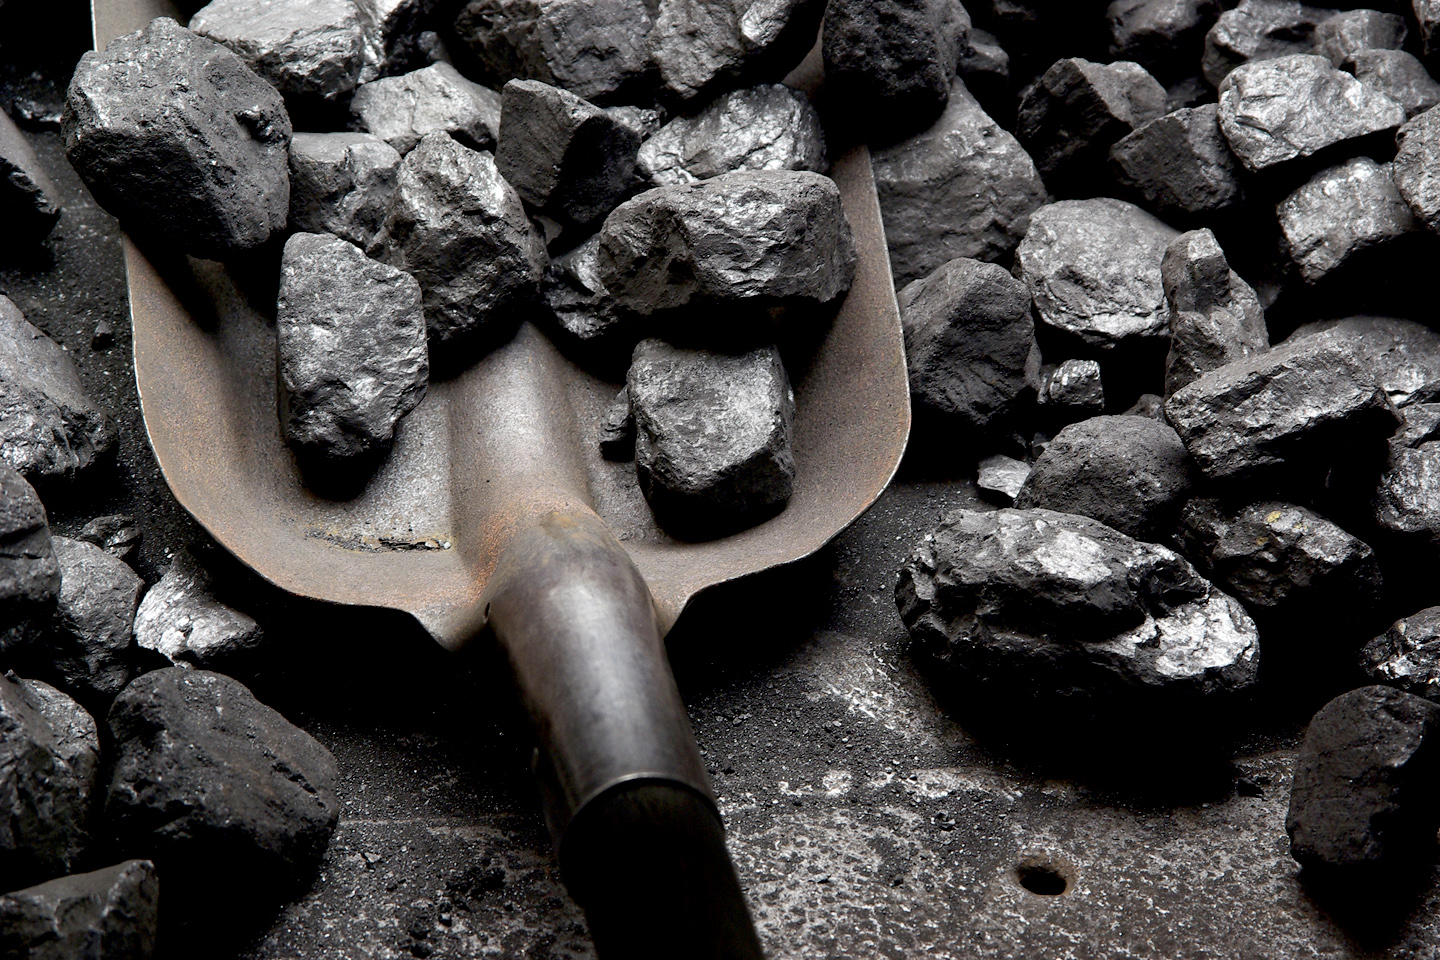 a shovel in a pile of coal